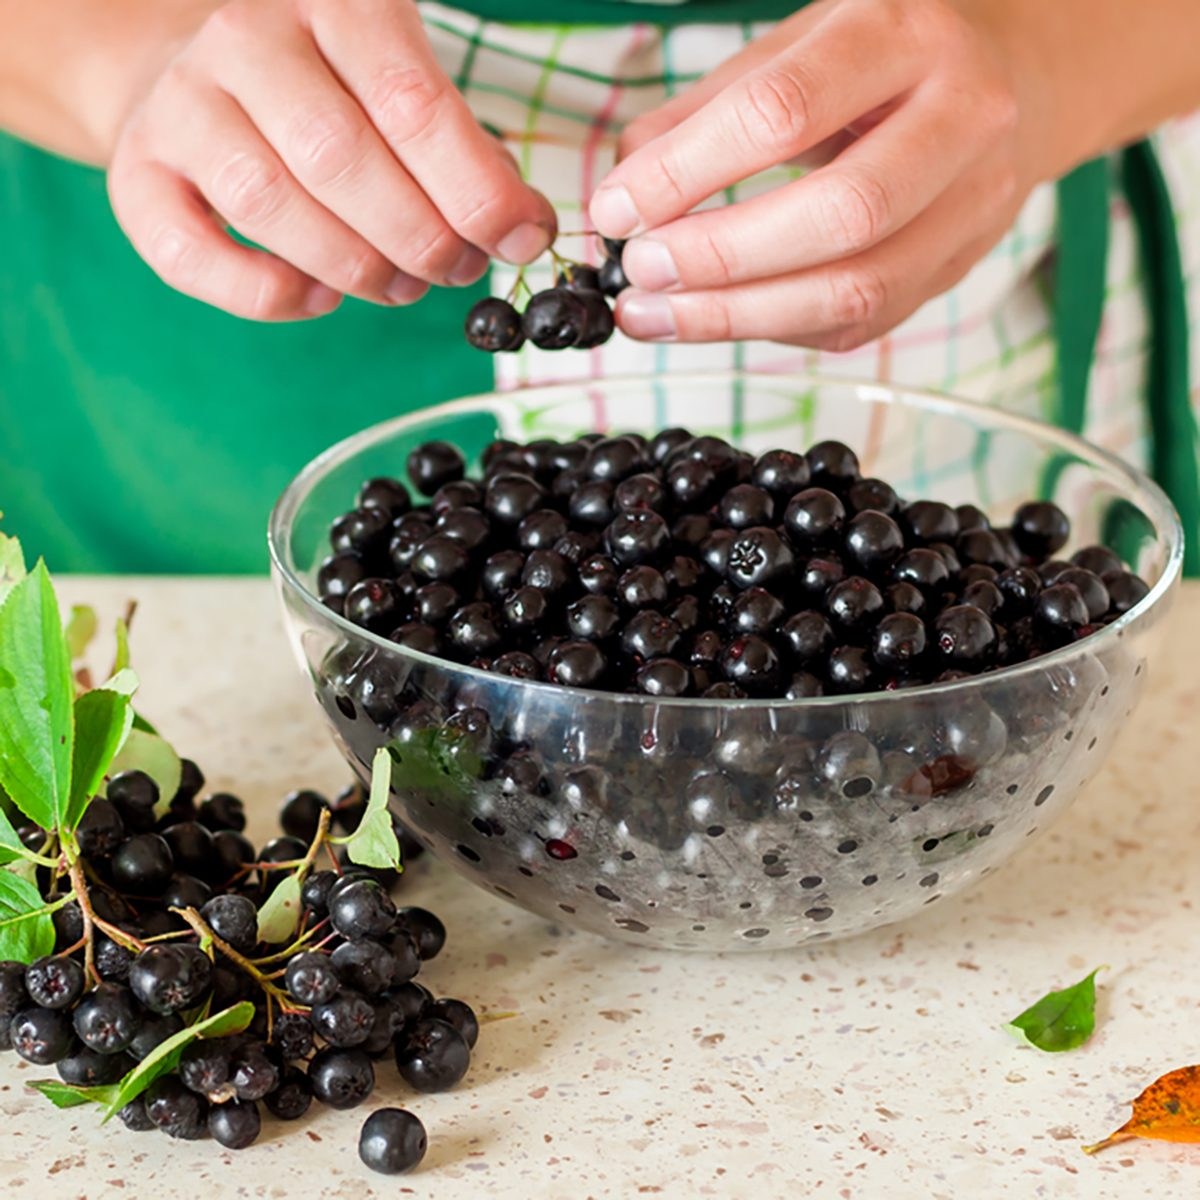 A Woman Picking Chokeberries (Aronia) off the Twig in the Kitchen